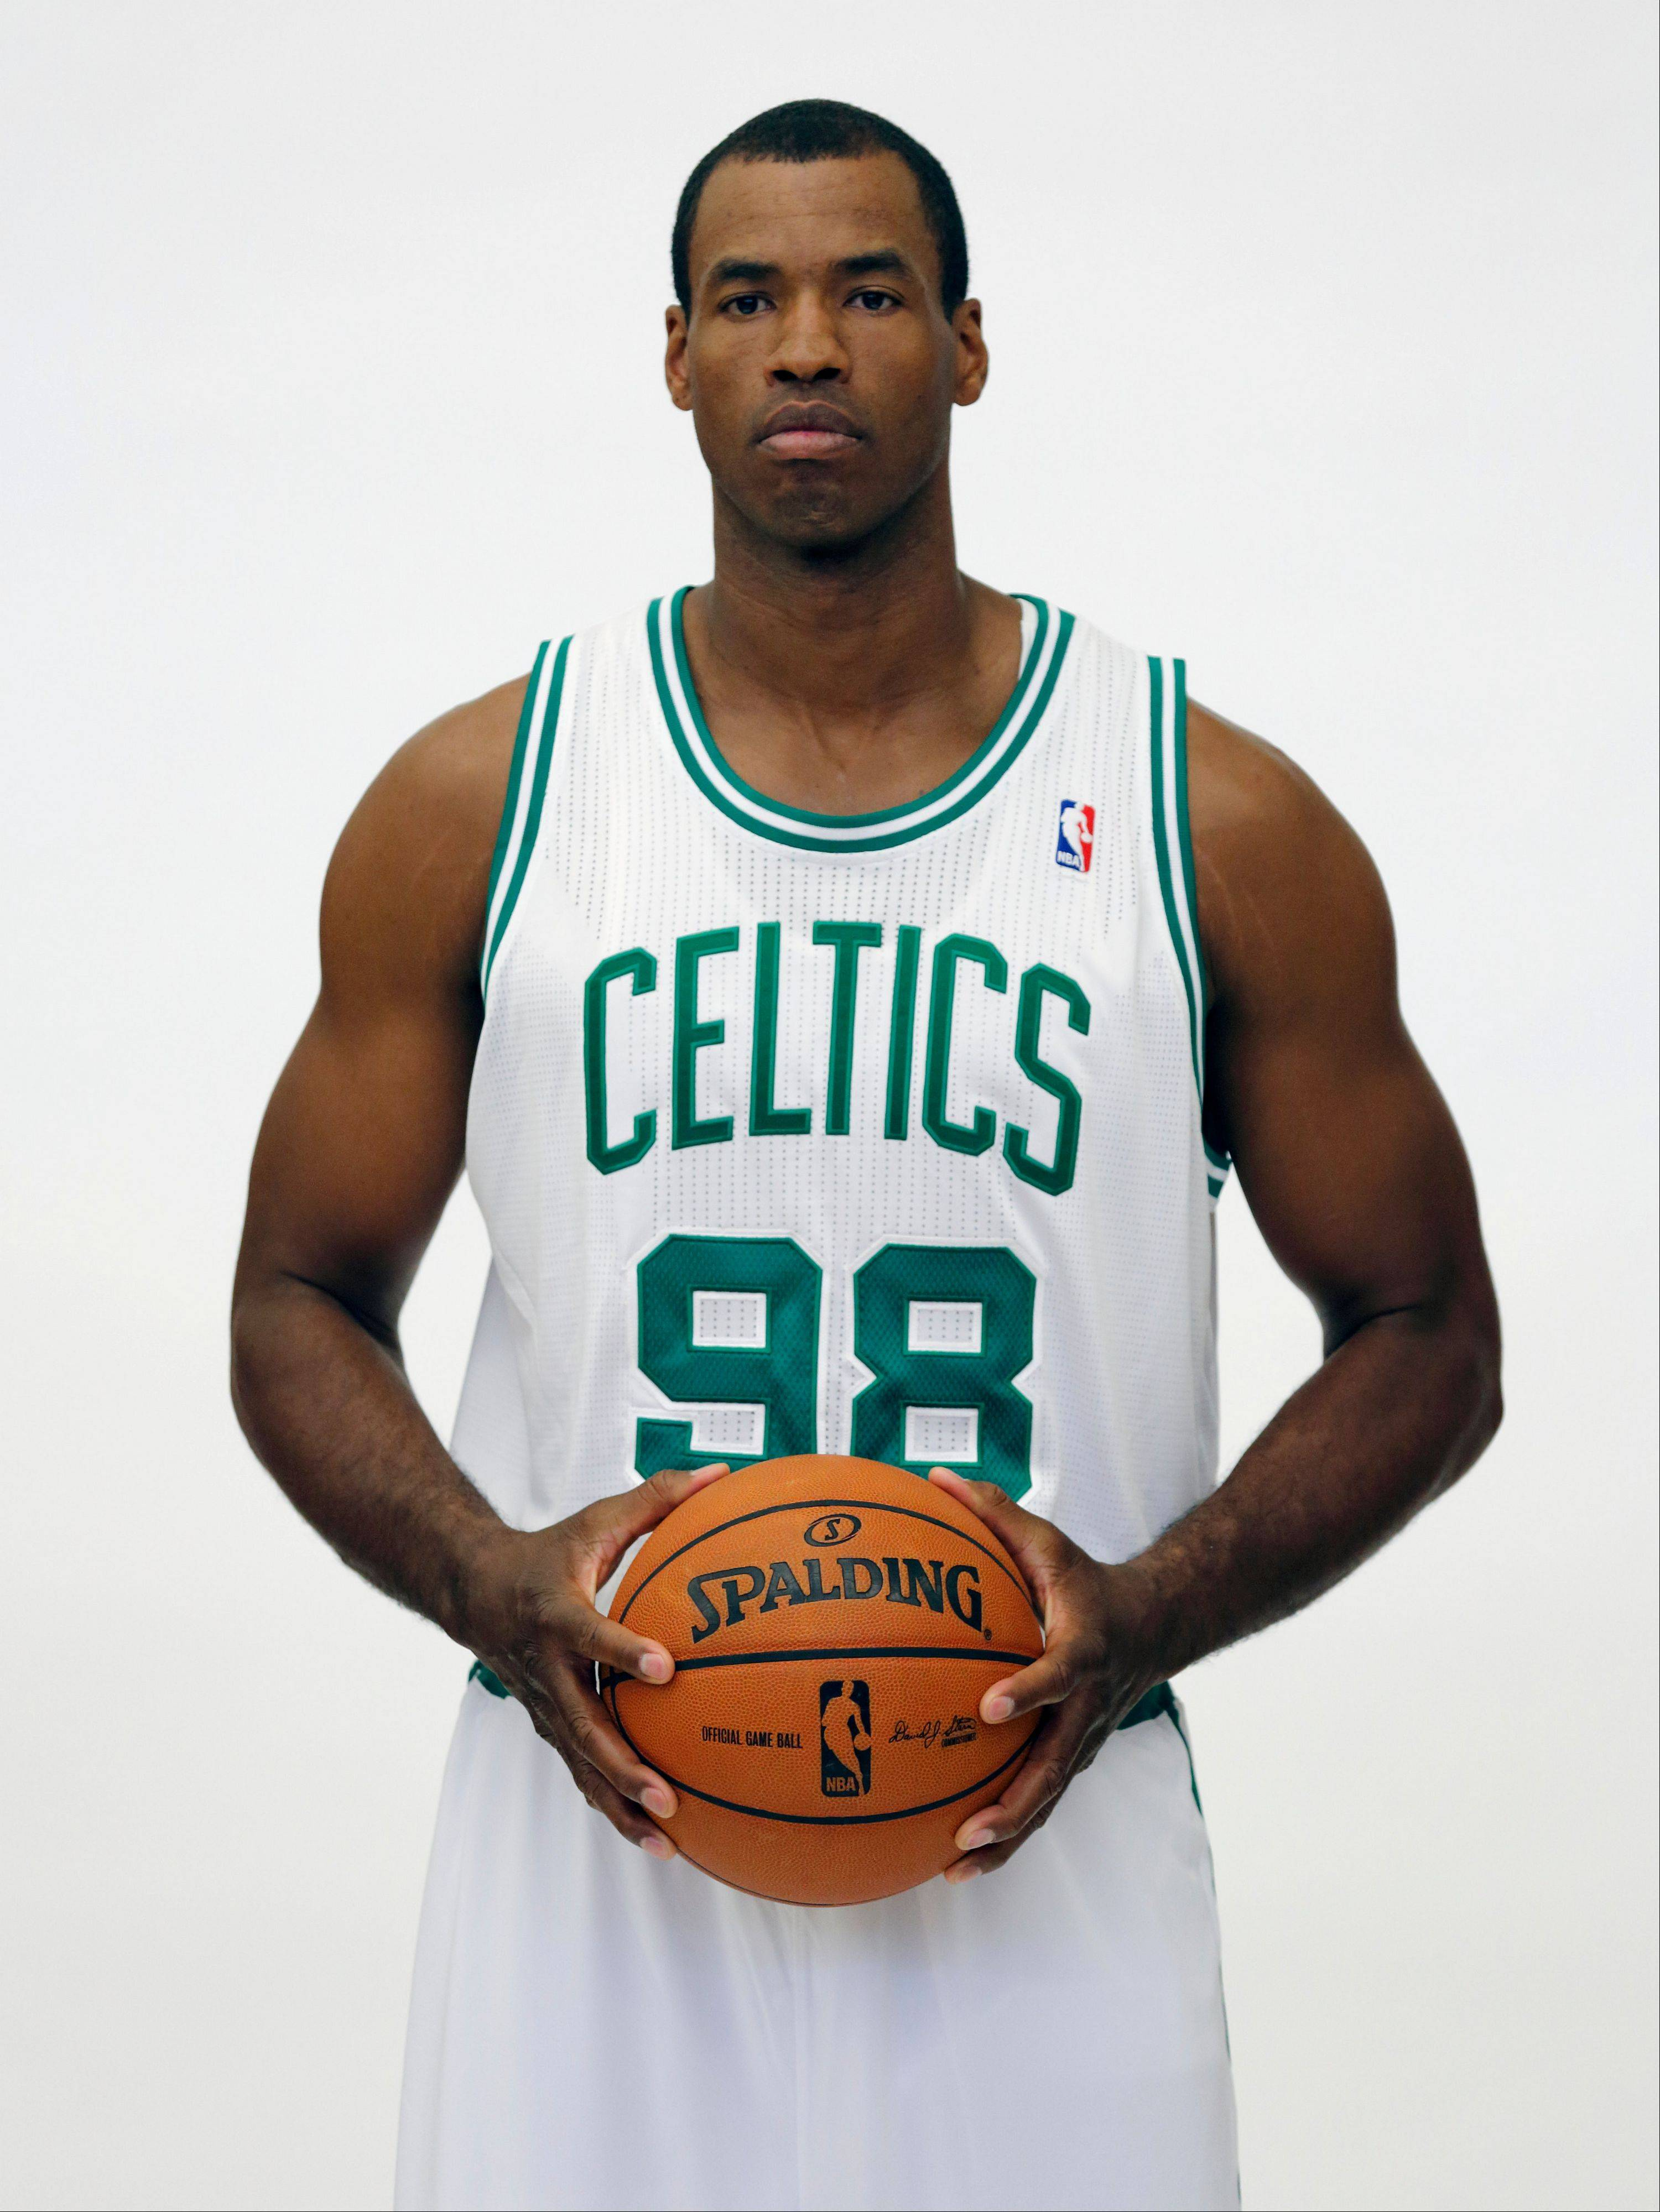 The Boston Celtics� Jason Collins has become the first male professional athlete in the major four American sports leagues to come out as gay.